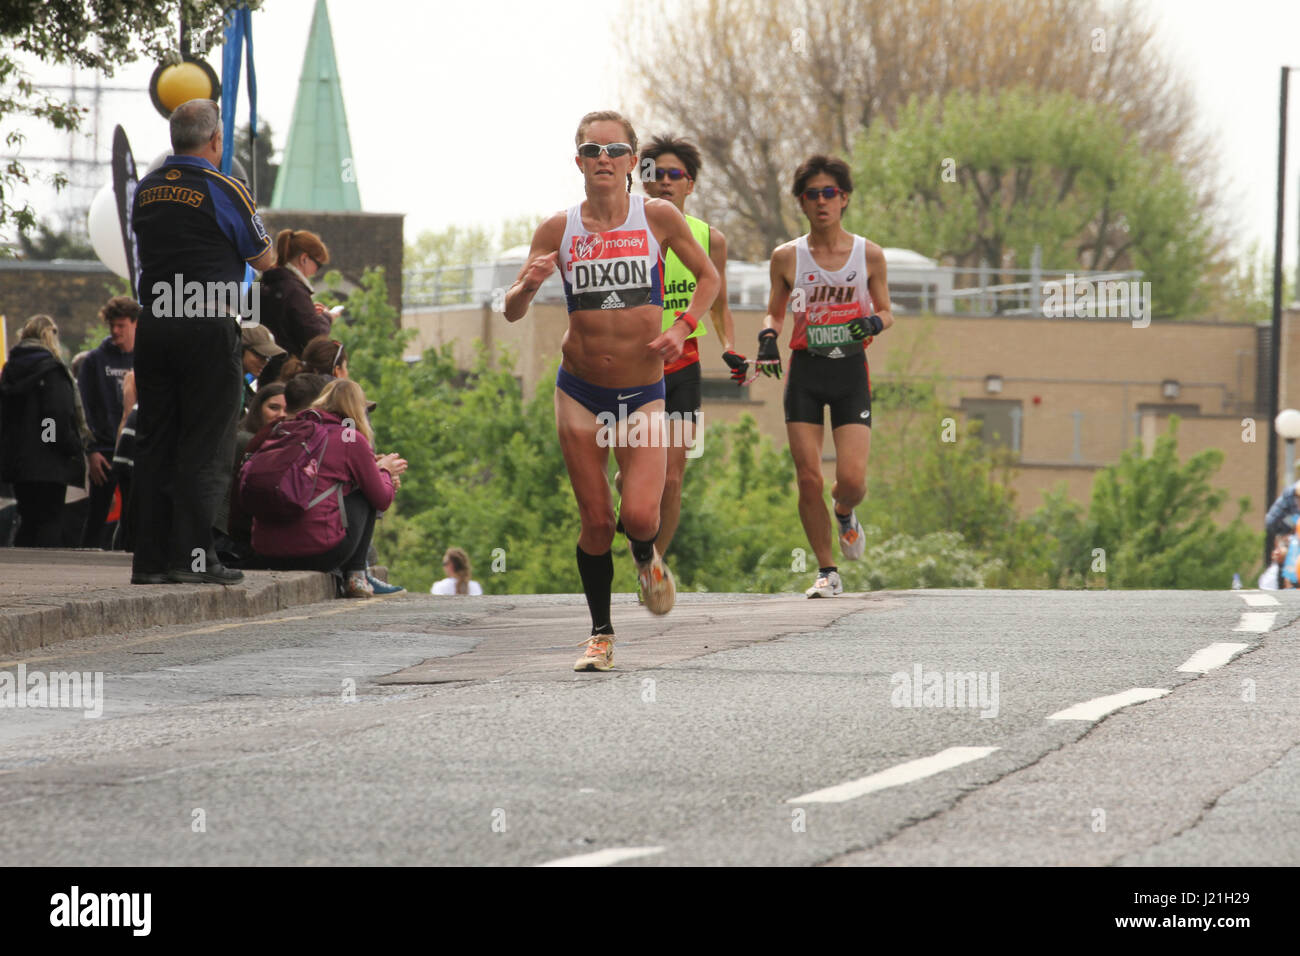 London, UK. 23rd Apr, 2017.  Alyson DIXON first GBR woman to cross the finish line at a02:29:06 race towards the - Stock Image